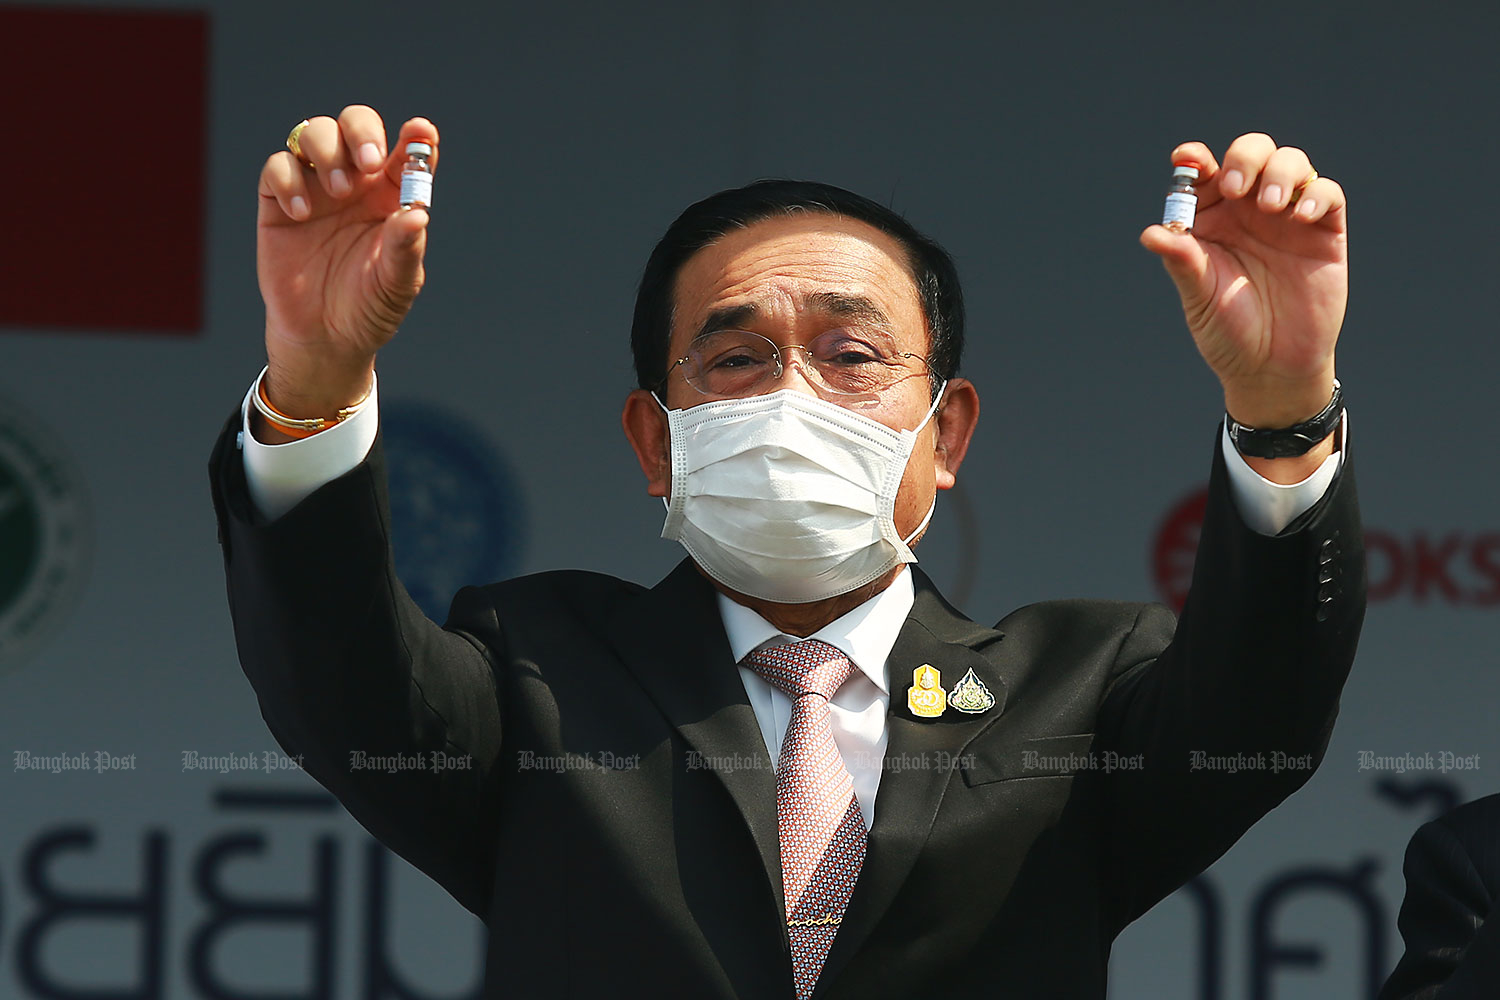 Prime Minister Prayut Chan-o-cha holds up two vials as he announced the arrival of the first batch of a Covid vaccine from China on Wednesday. (Photo by Somchai Poomlard)